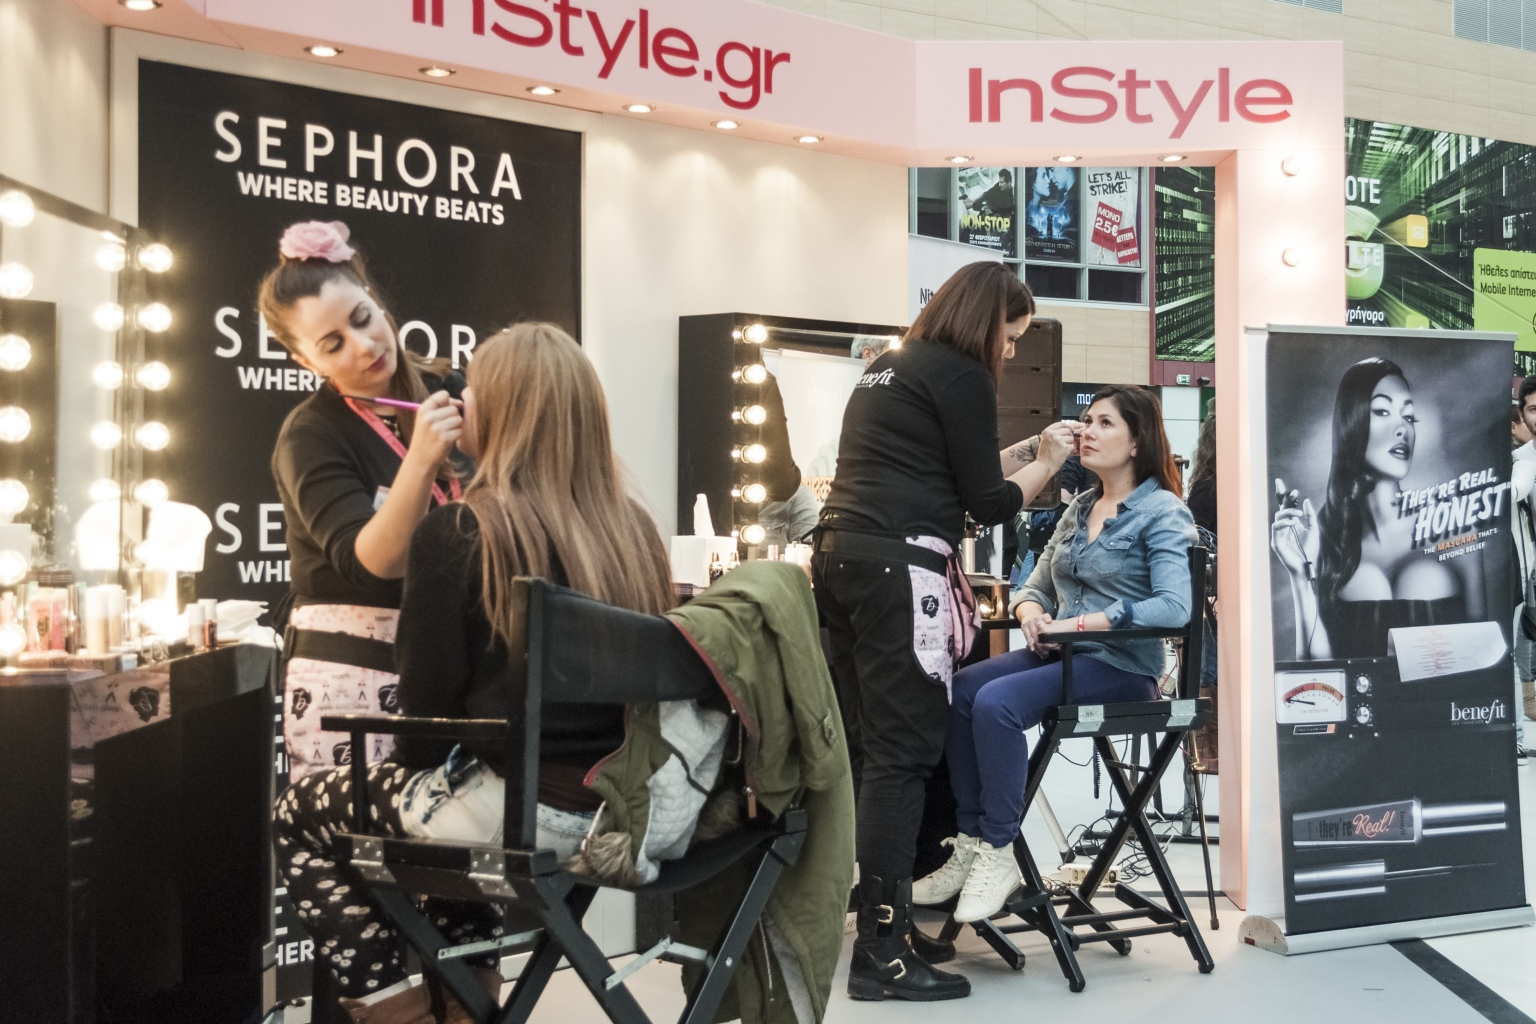 instyle-booth